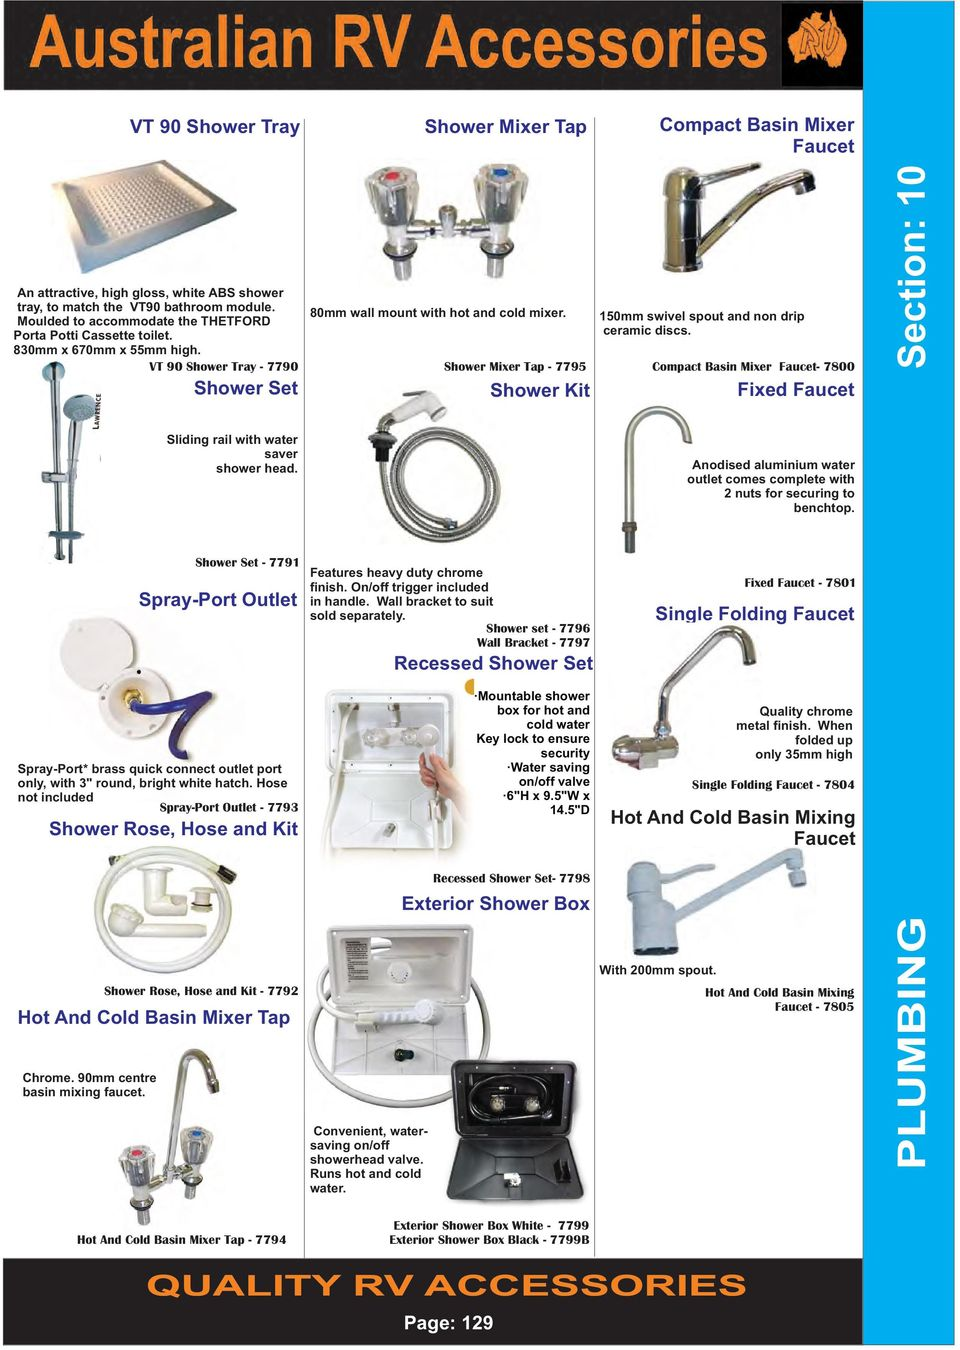 Section 10 Plumbing Quality Rv Accessories Page Pdf Blackwater Diagrams Moreover Thetford Toilet Parts Diagram Vt 90 Shower Tray 7790 Mixer Tap 7795 Set Rose